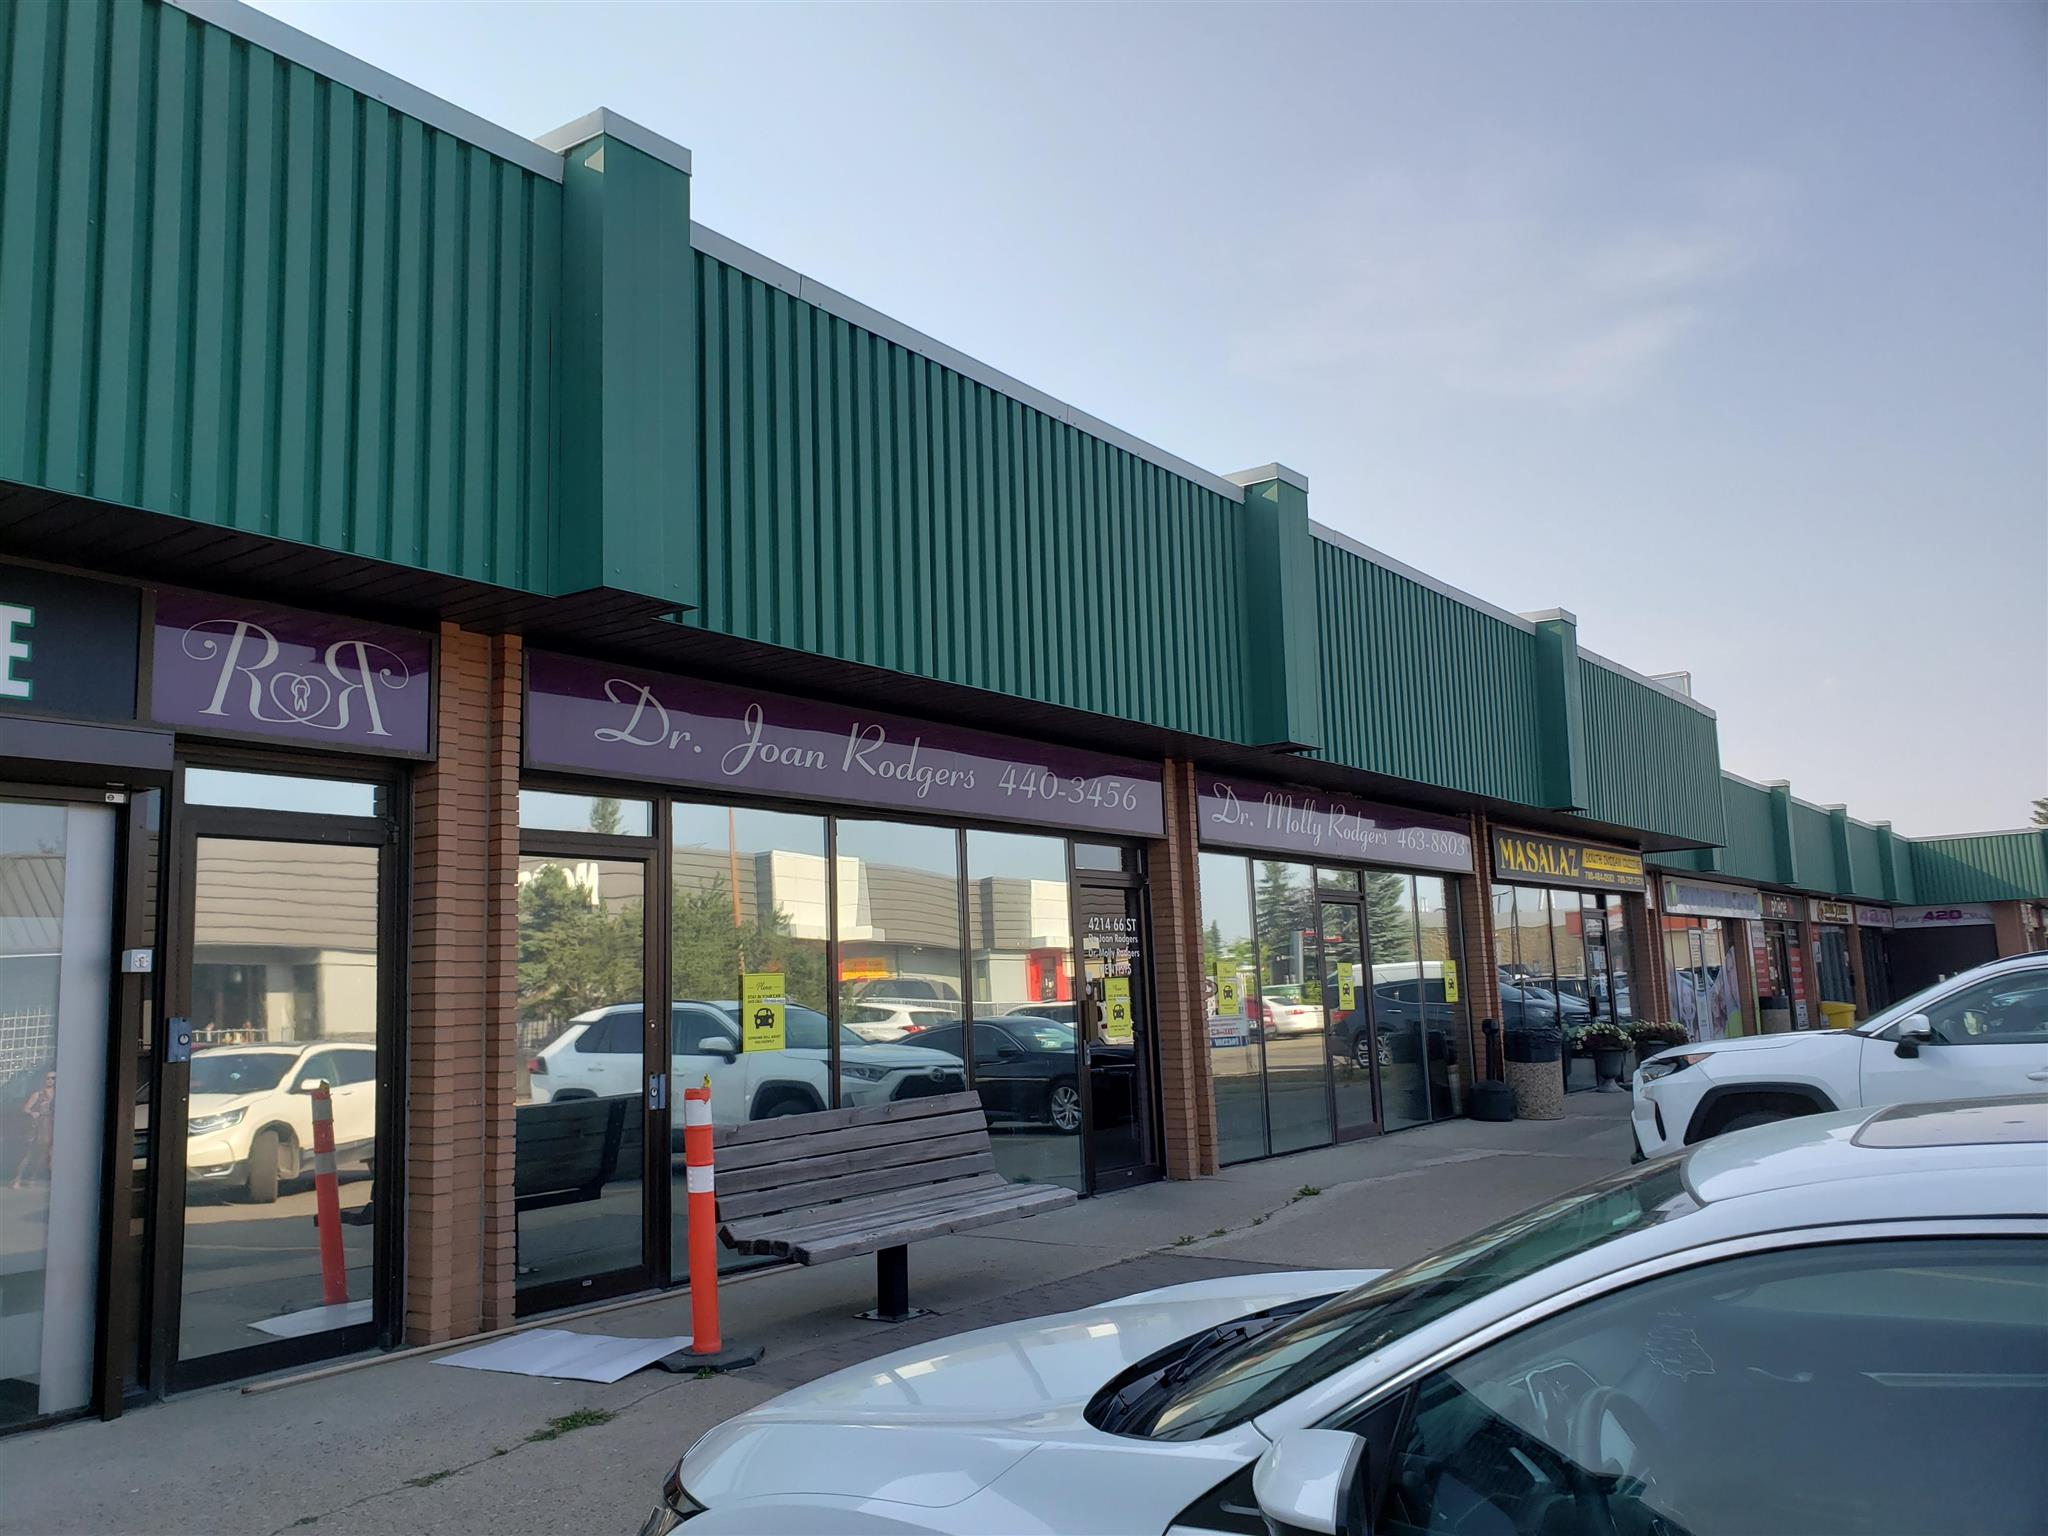 Investment opportunity in a vibrant strip plaza (PLAZA 66) anchored by McDonalds. Valley Line LRT runs by the plaza and stops within 5 mins walking distance. 2,860 SF bay. Very stable tenant. Good upside potential.